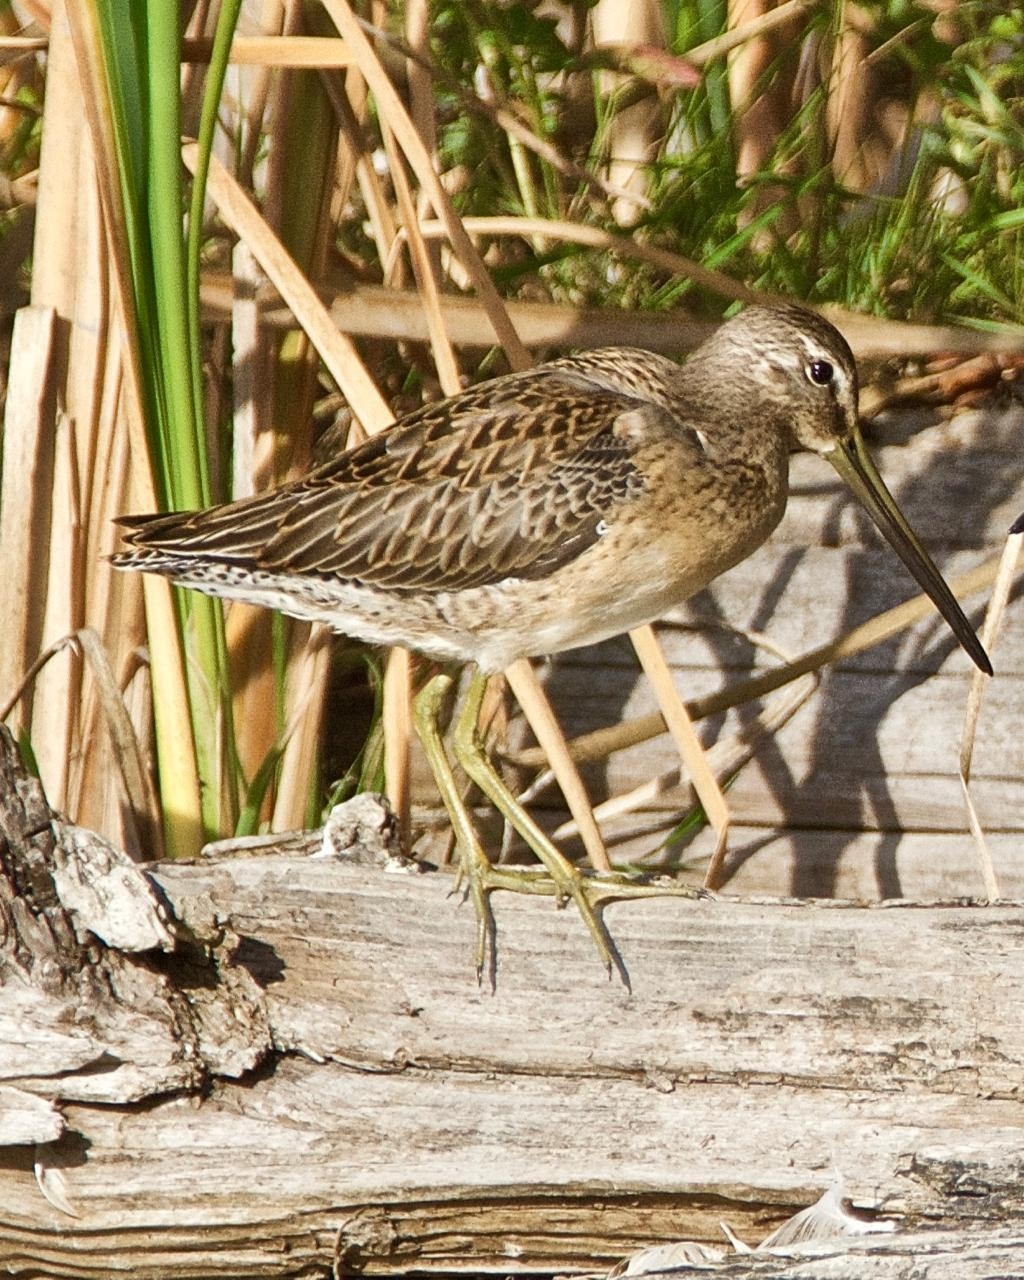 Long-billed Dowitcher Photo by Brian Avent